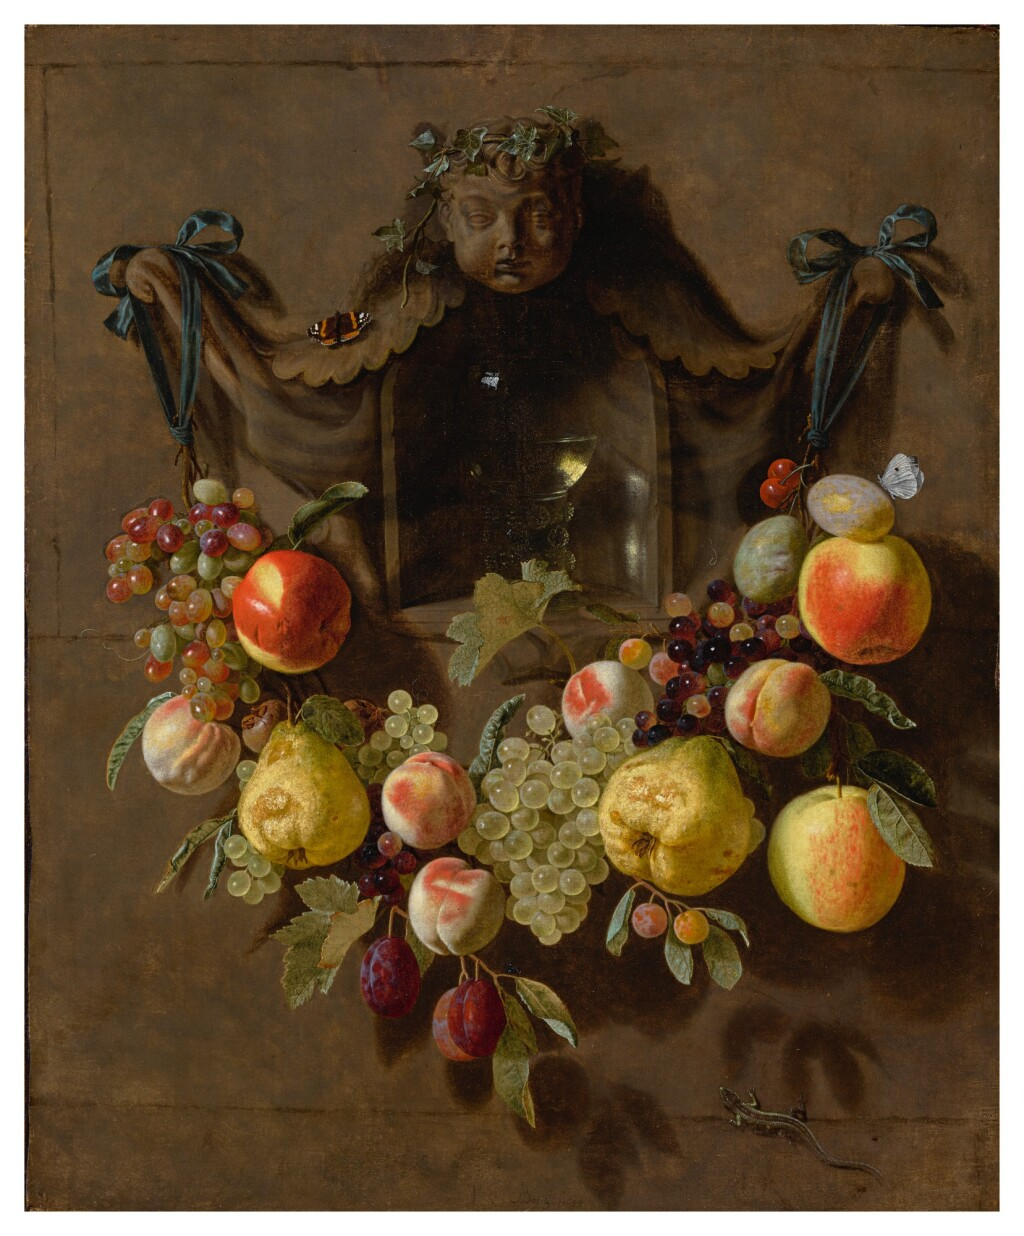 PIETER VAN DEN BOSCH THE YOUNGER   A TROMPE L'OEIL STILL LIFE WITH A SWAG OF GRAPES, PEARS, PEACHES, APPLES, PLUMS, AND BUTTERFLIES DECORATING A NICHE WITH A GLASS ROEMER